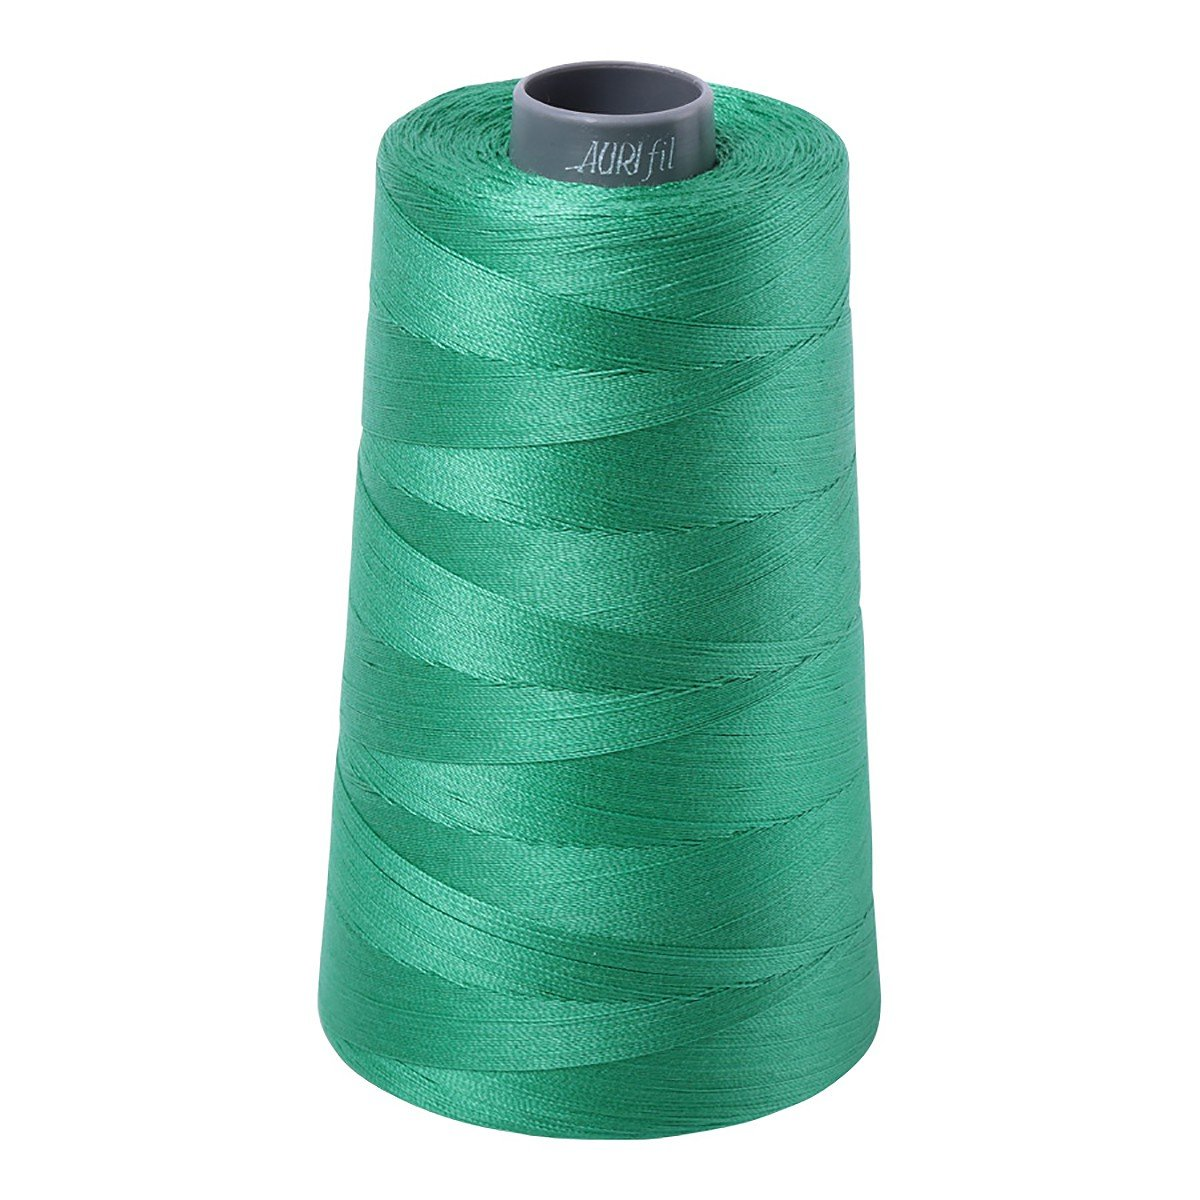 Mako (Cotton) Embroidery Thread 28wt 3609yds Emerald